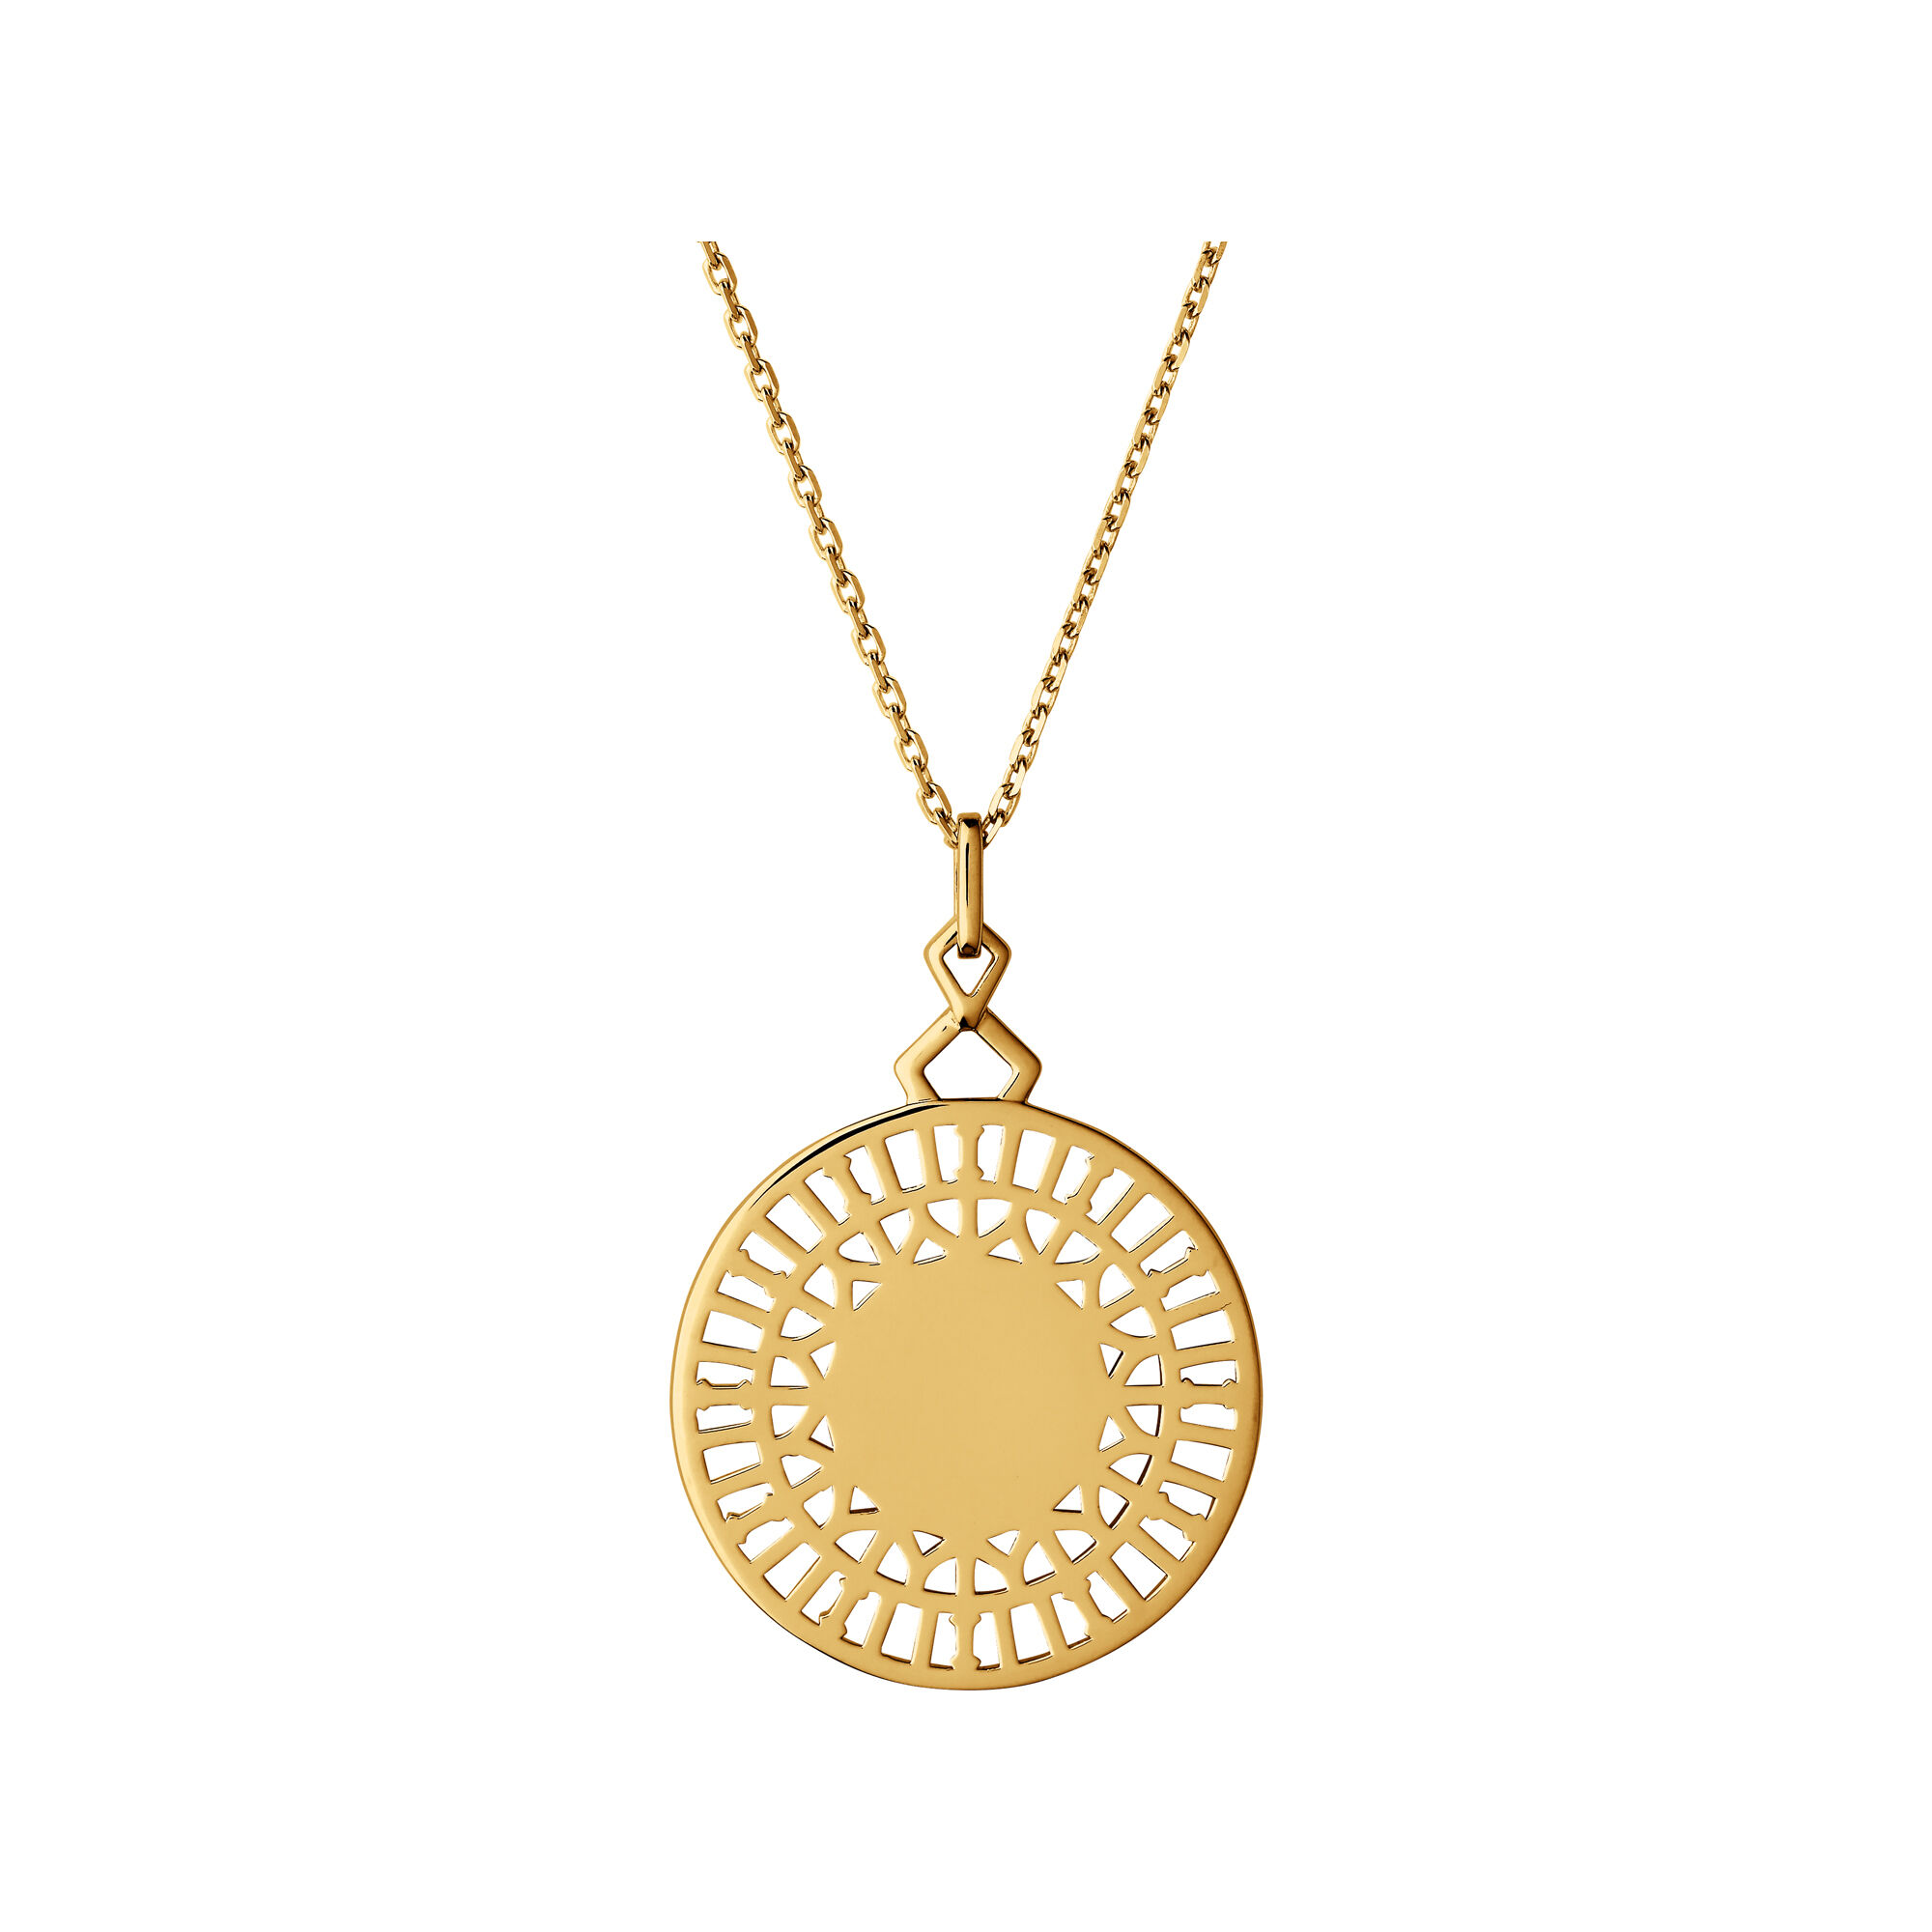 Timeless 18kt Yellow Gold Vermeil Necklace Links Of London